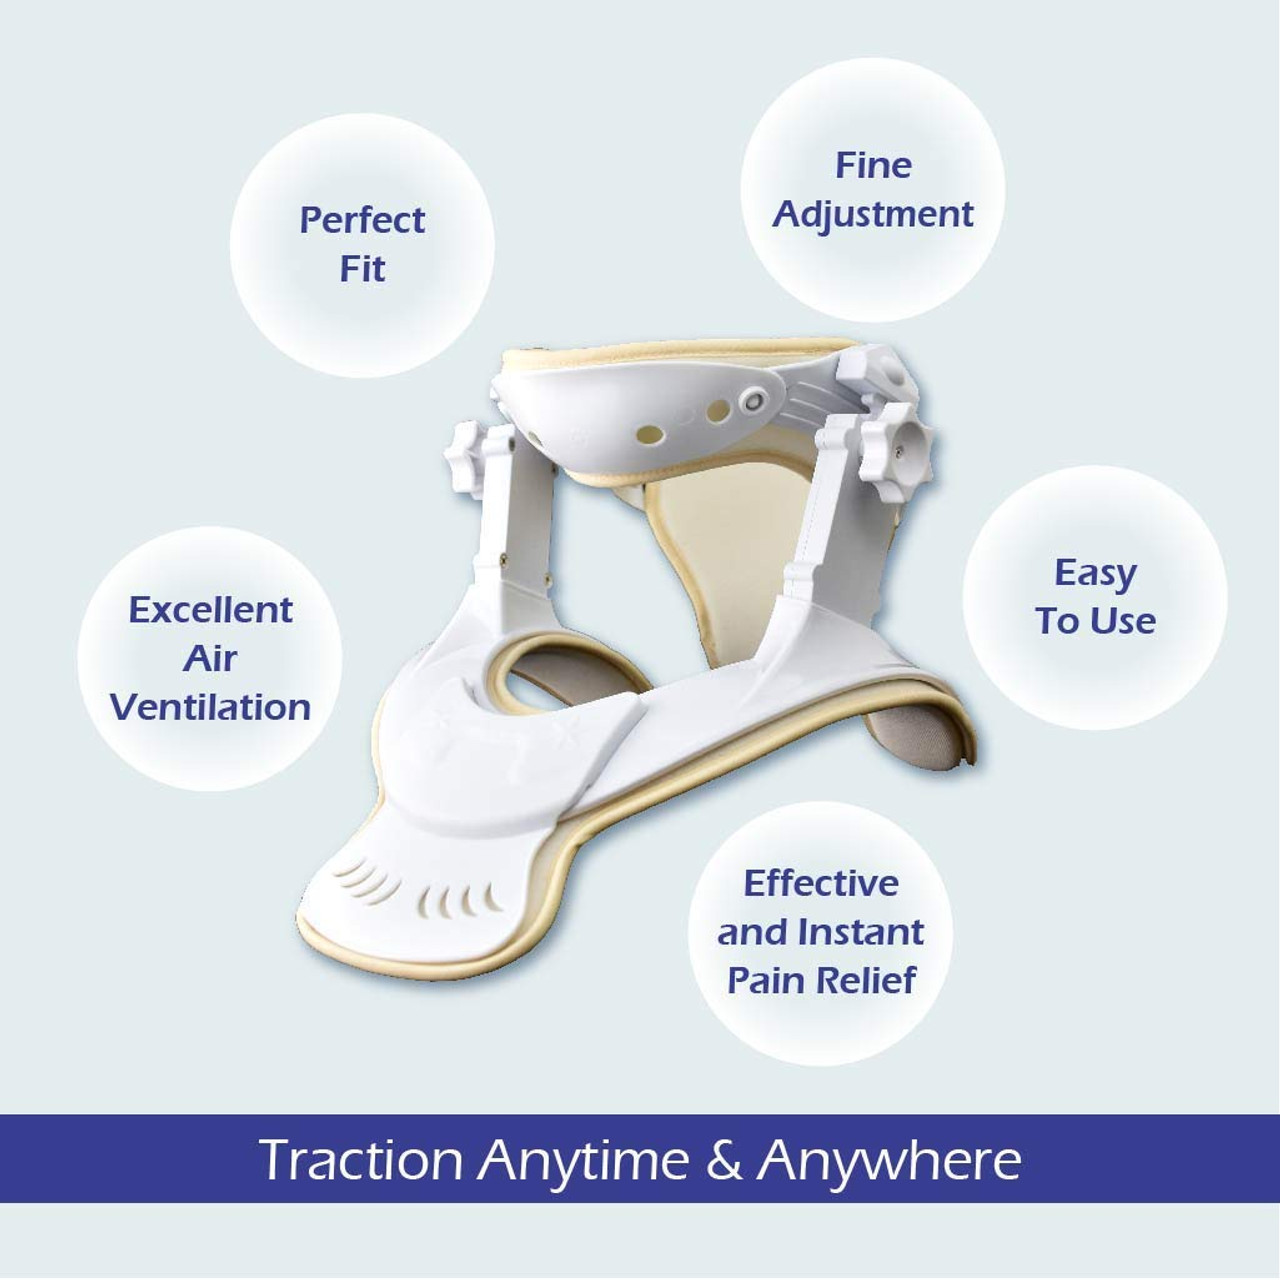 Cervical Neck Traction Device- Cervical Traction Unit for Home Use and Decompression(S/M)